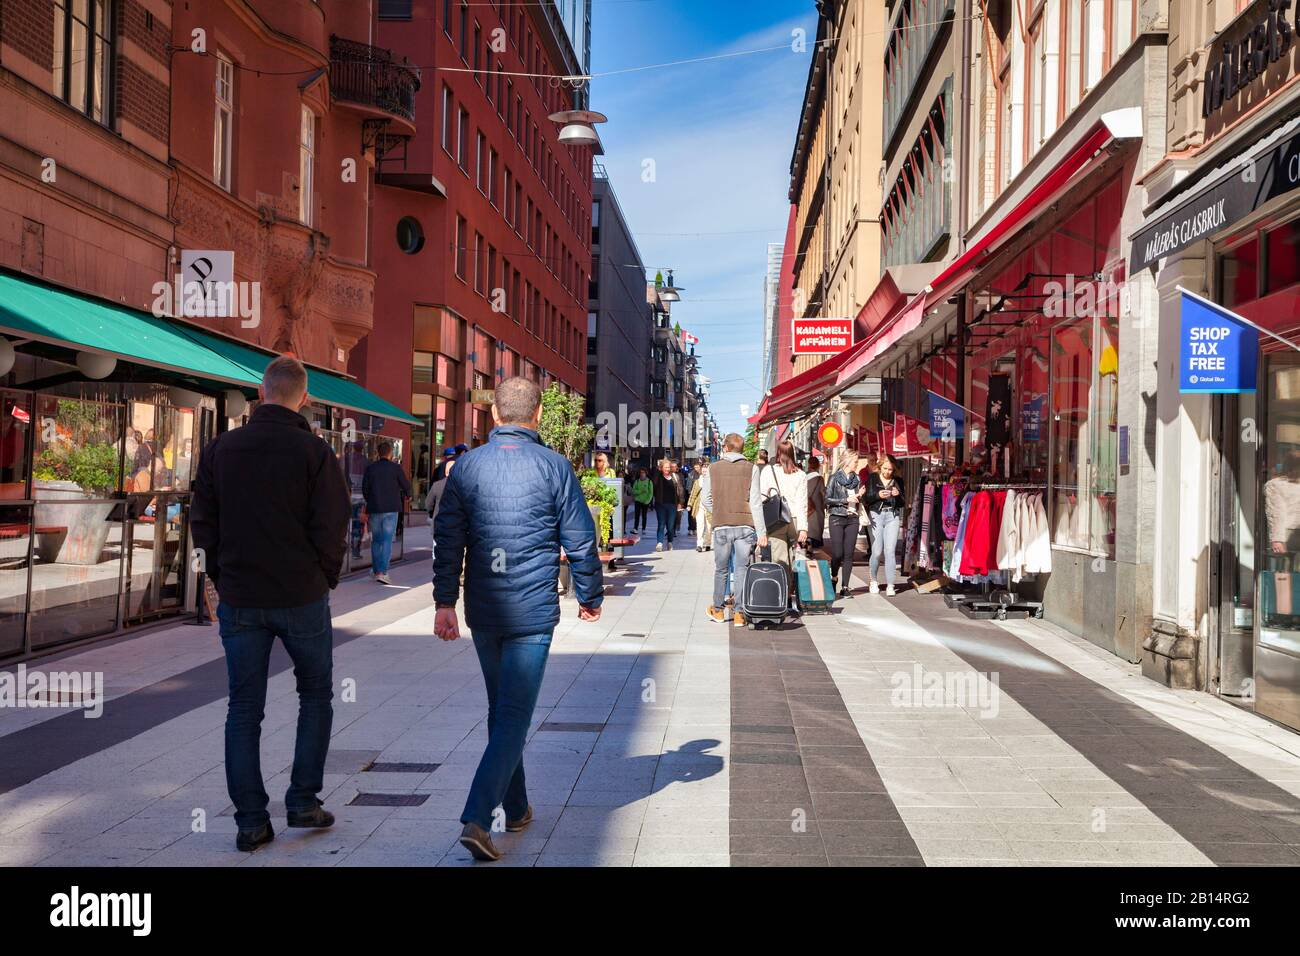 16 September 2018: Stockholm, Sweden - Shoppers and tourists  in Drottninggatan on a bright sunny autumn weekend. Stock Photo